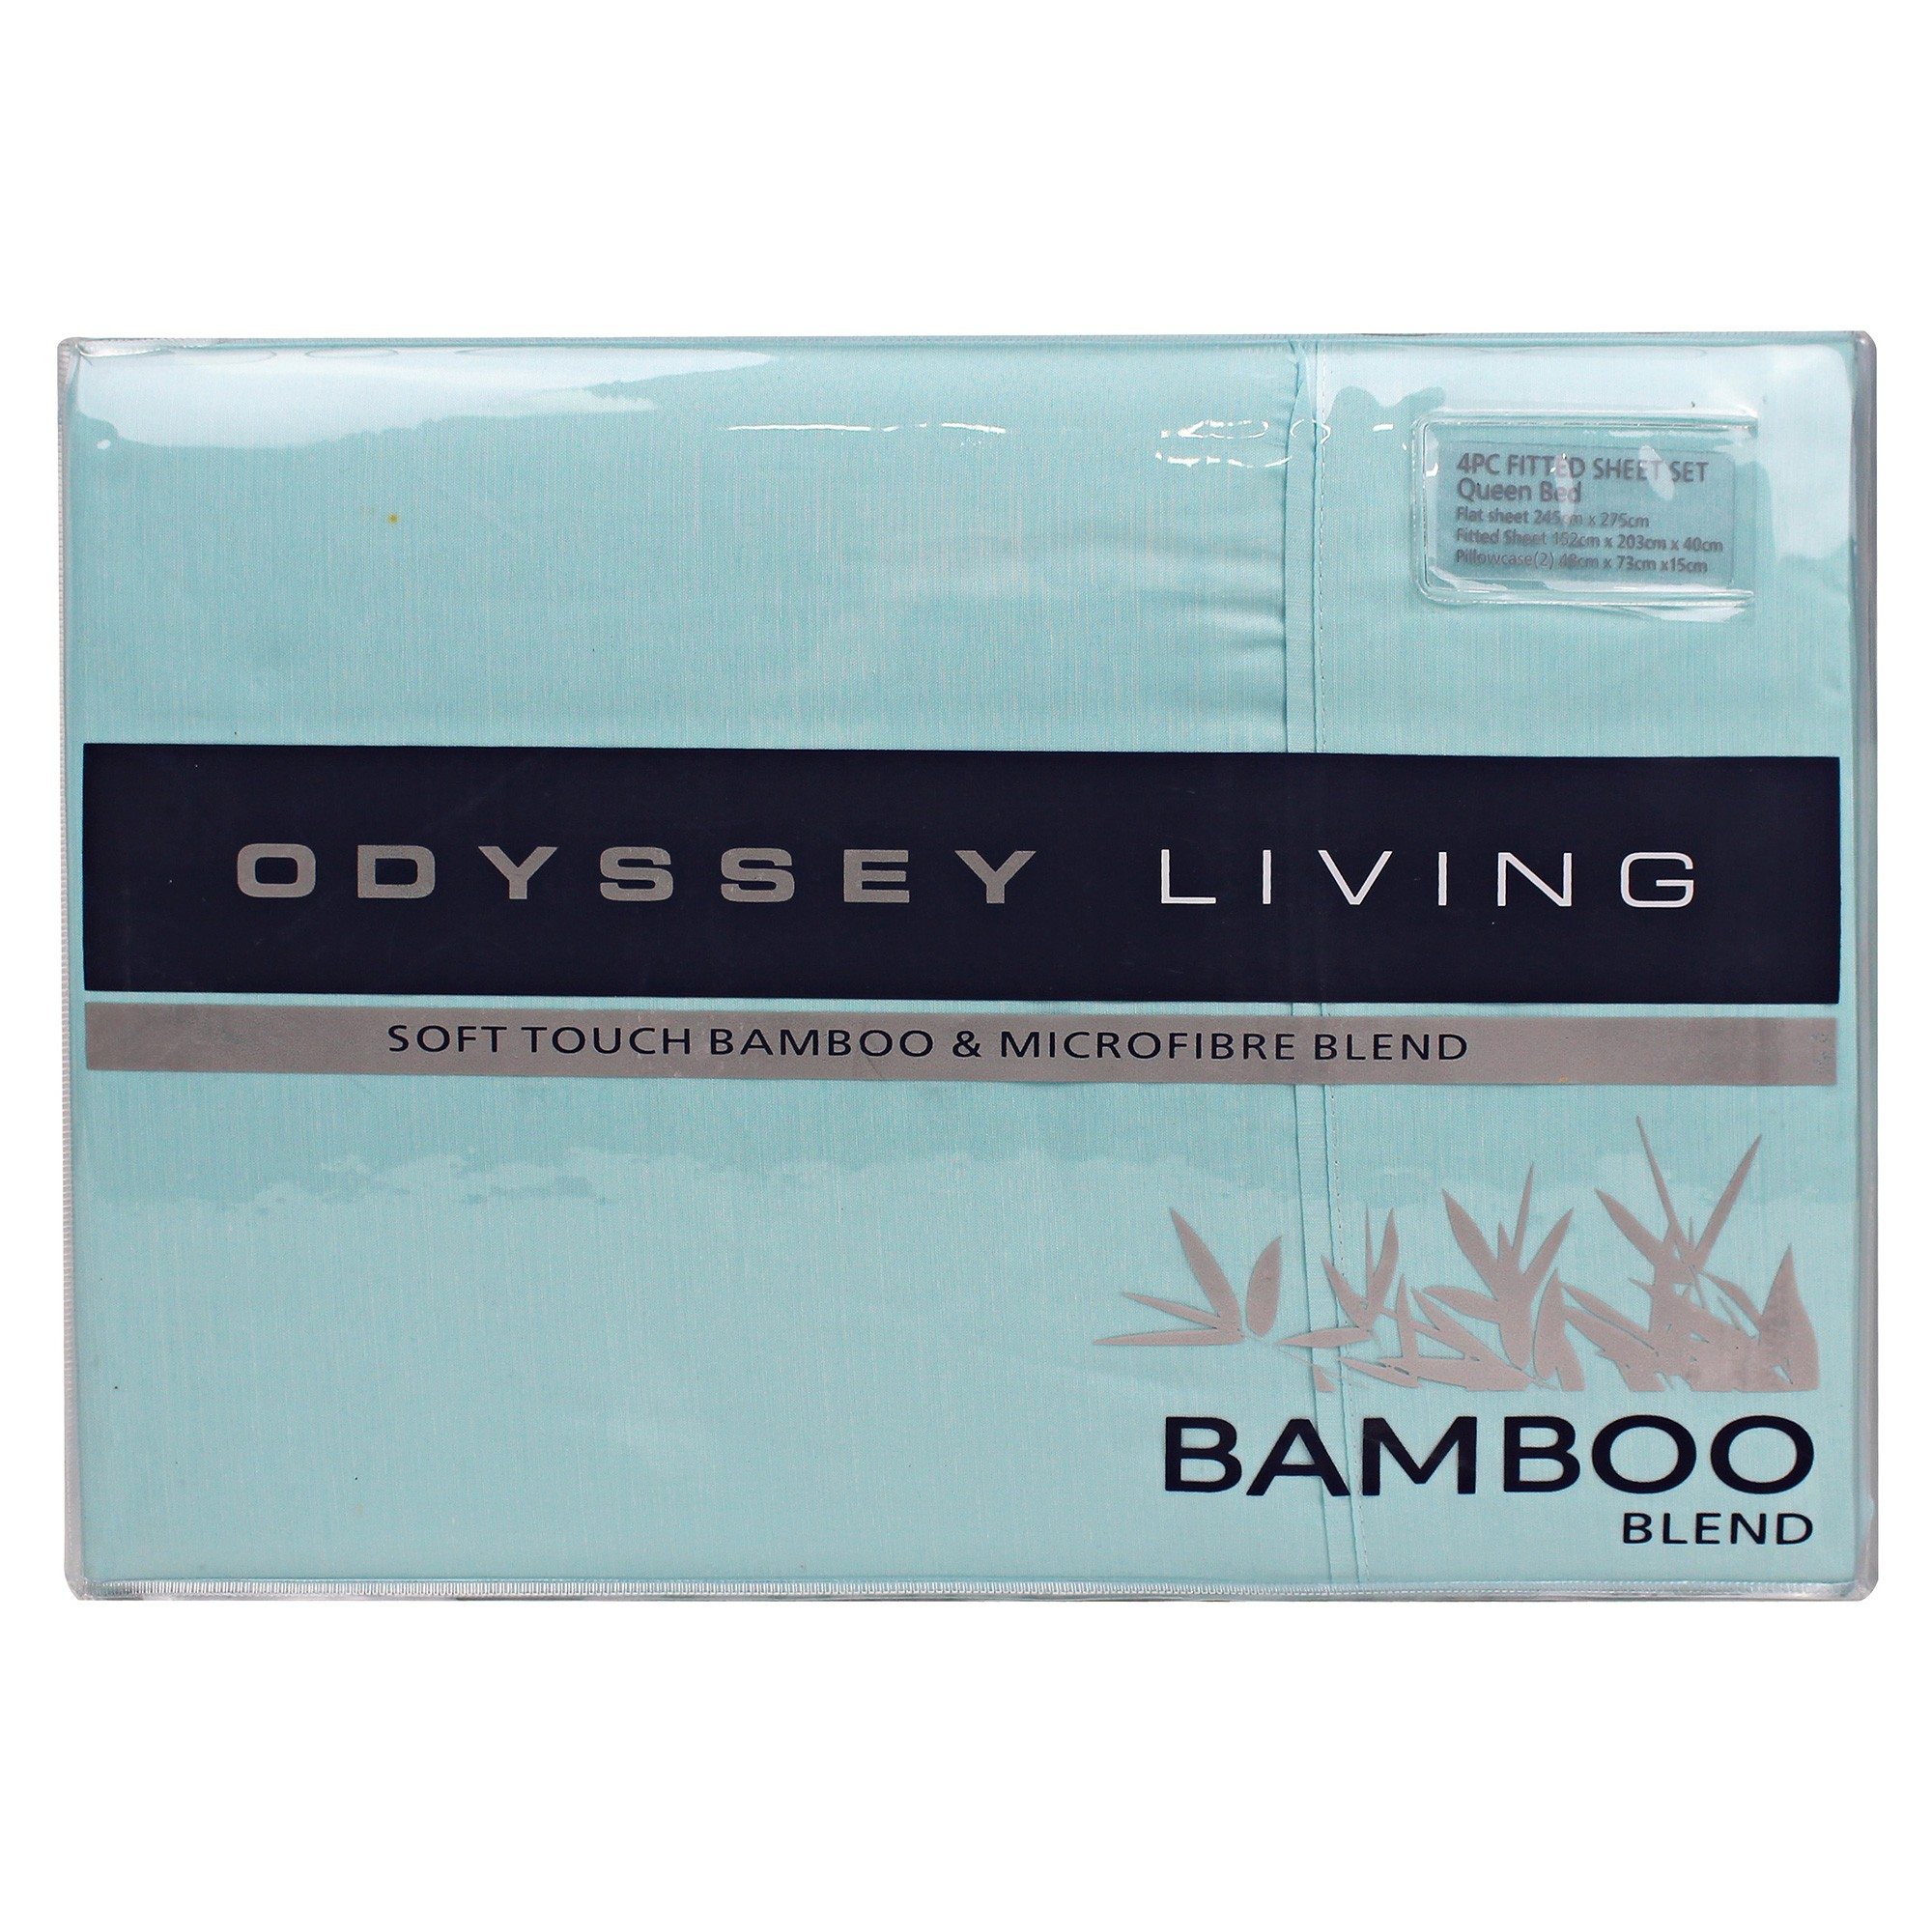 Odyssey Living Soft Touch Bamboo & Microfibre Blend Sheet Set, King, Aqua